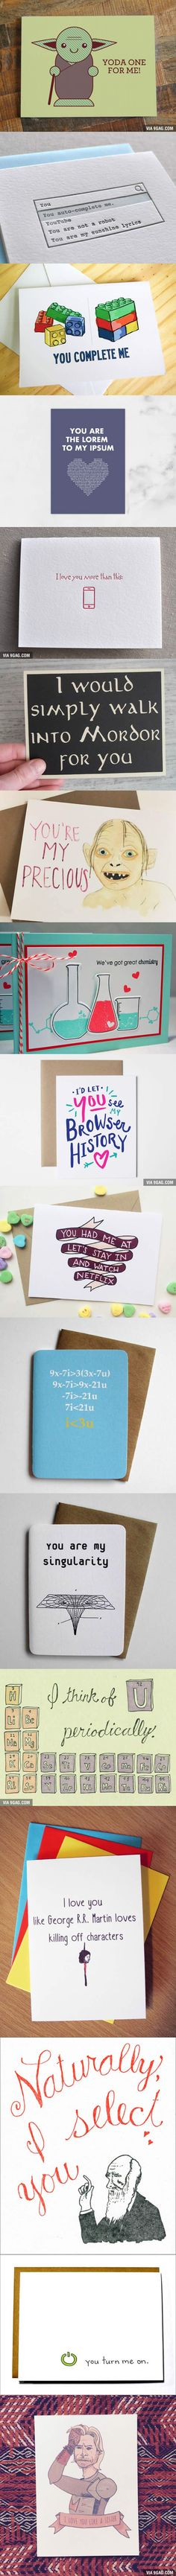 17 Nerdy Valentine's Day Cards More